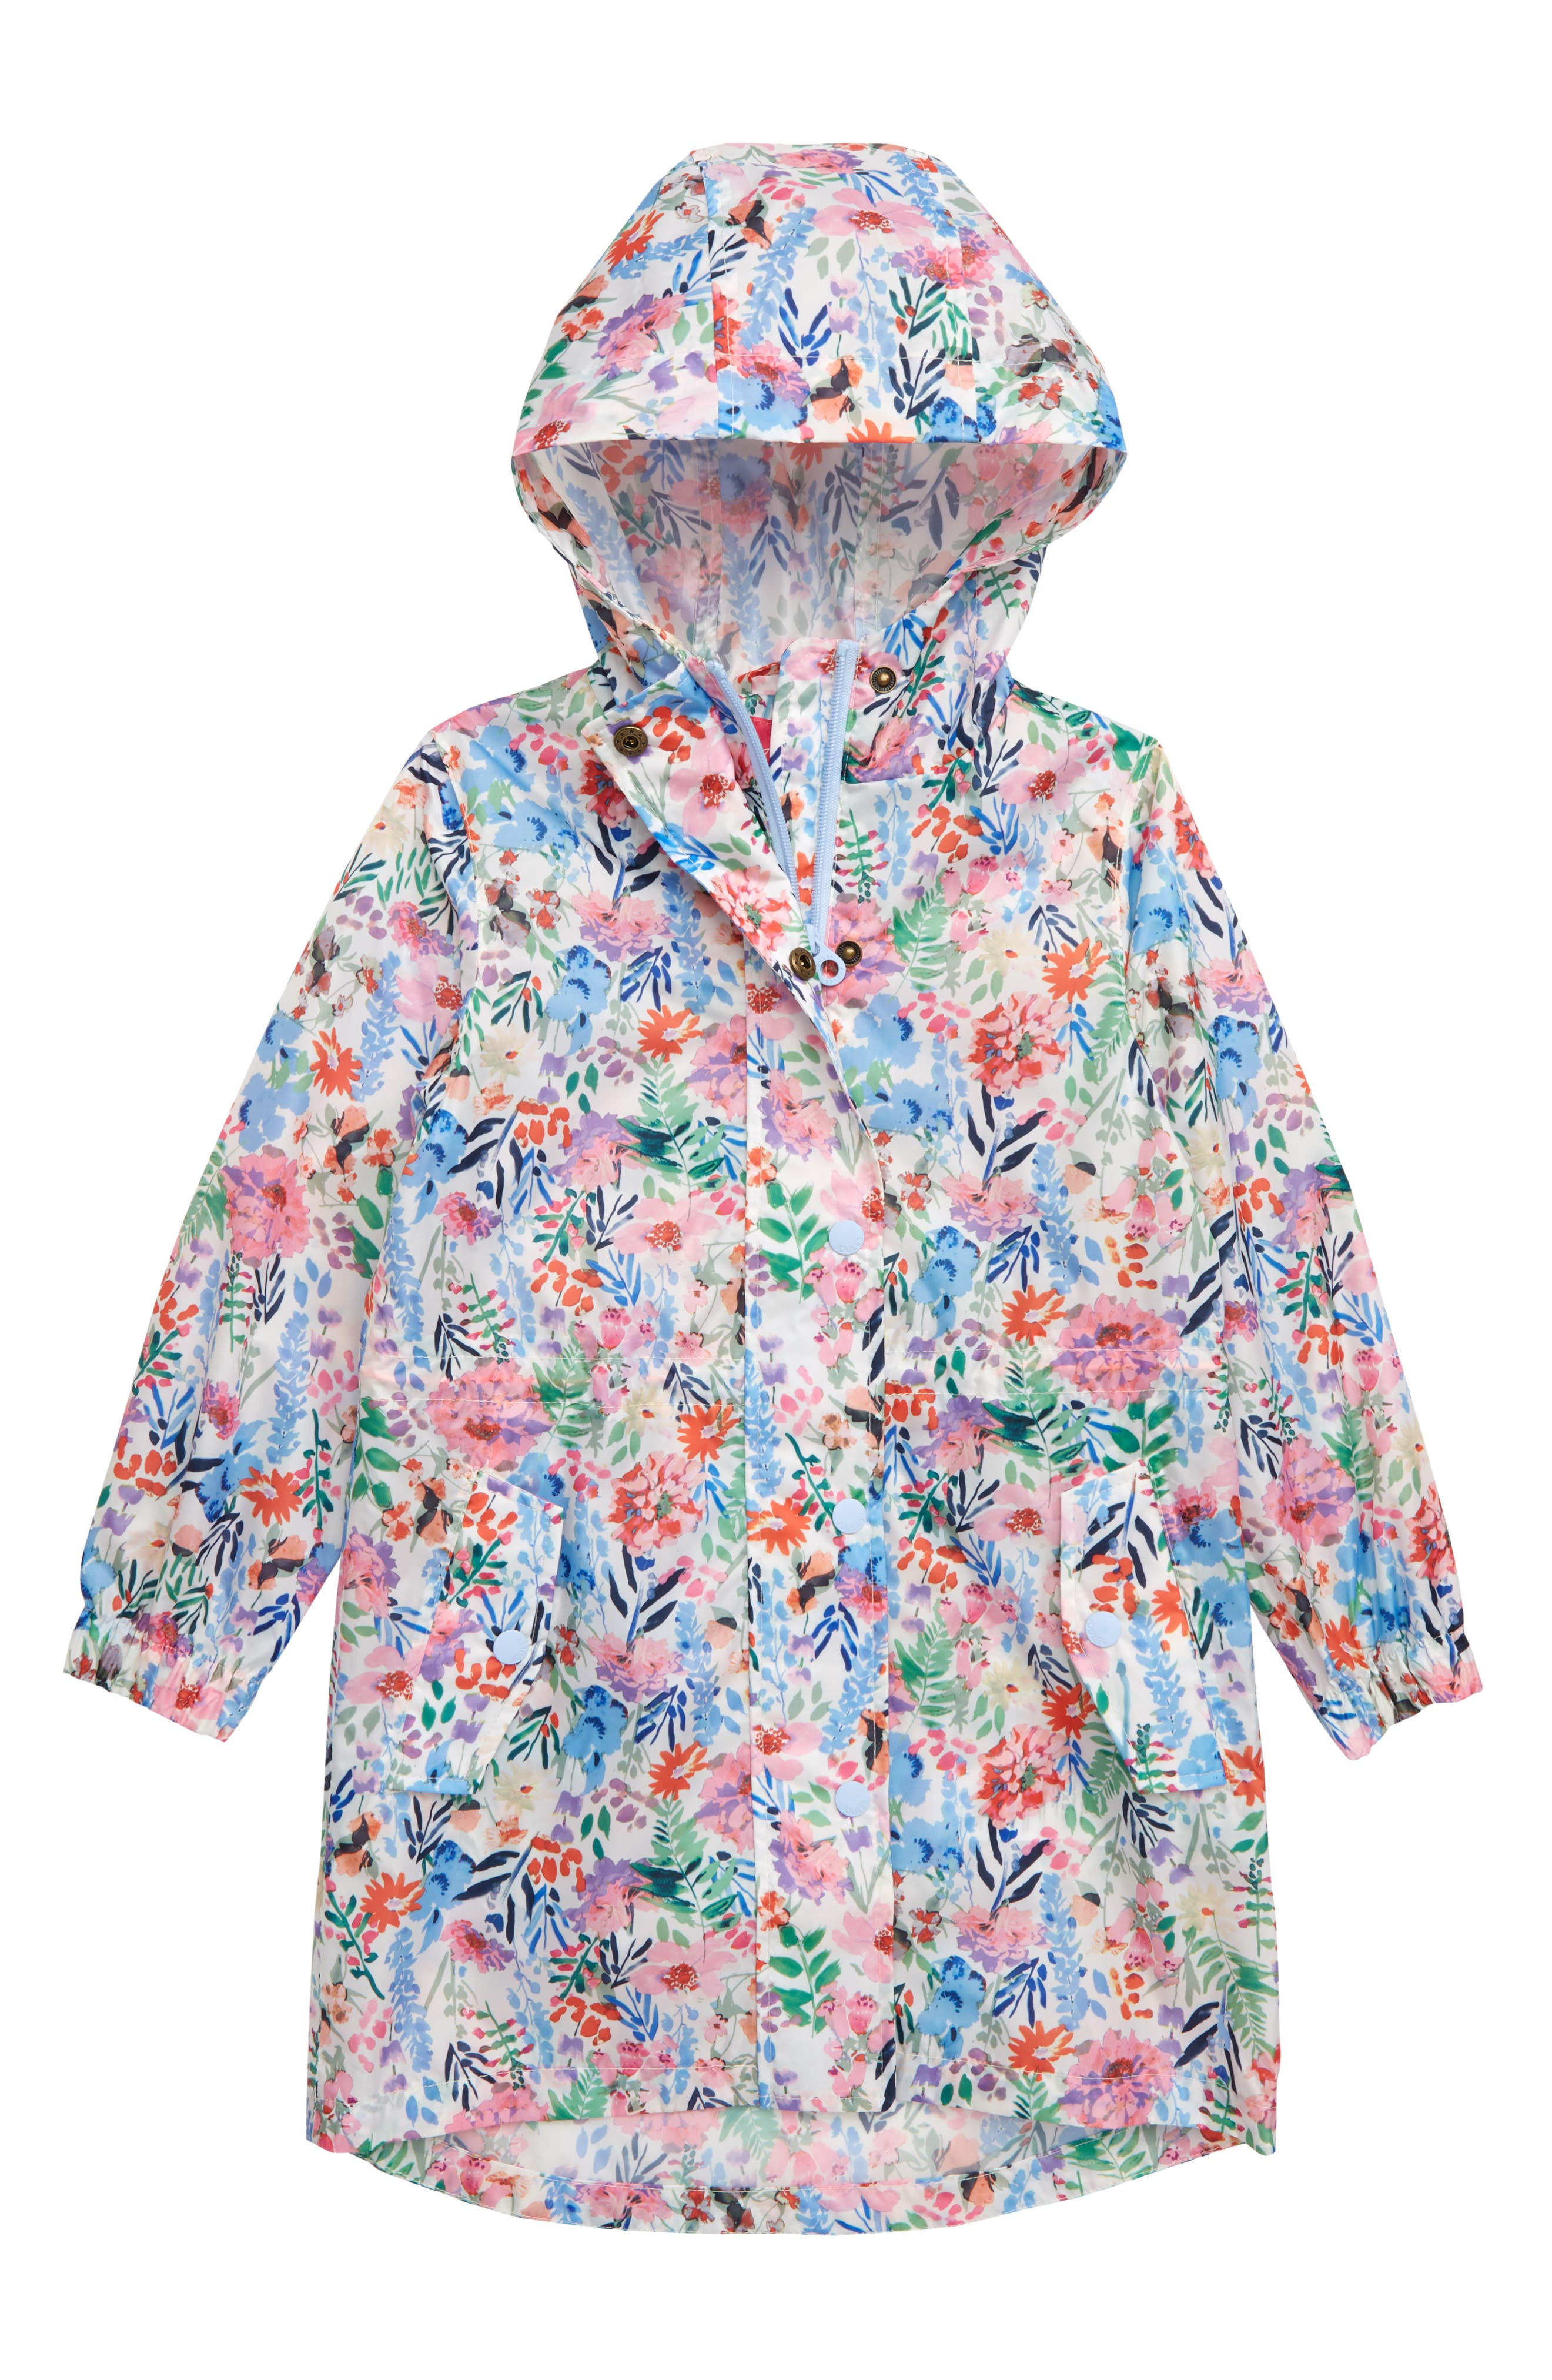 c4c2bd2e7 Toddler Girls Joules Golightly Packable Waterproof Rain Jacket Size 3Y Ivory